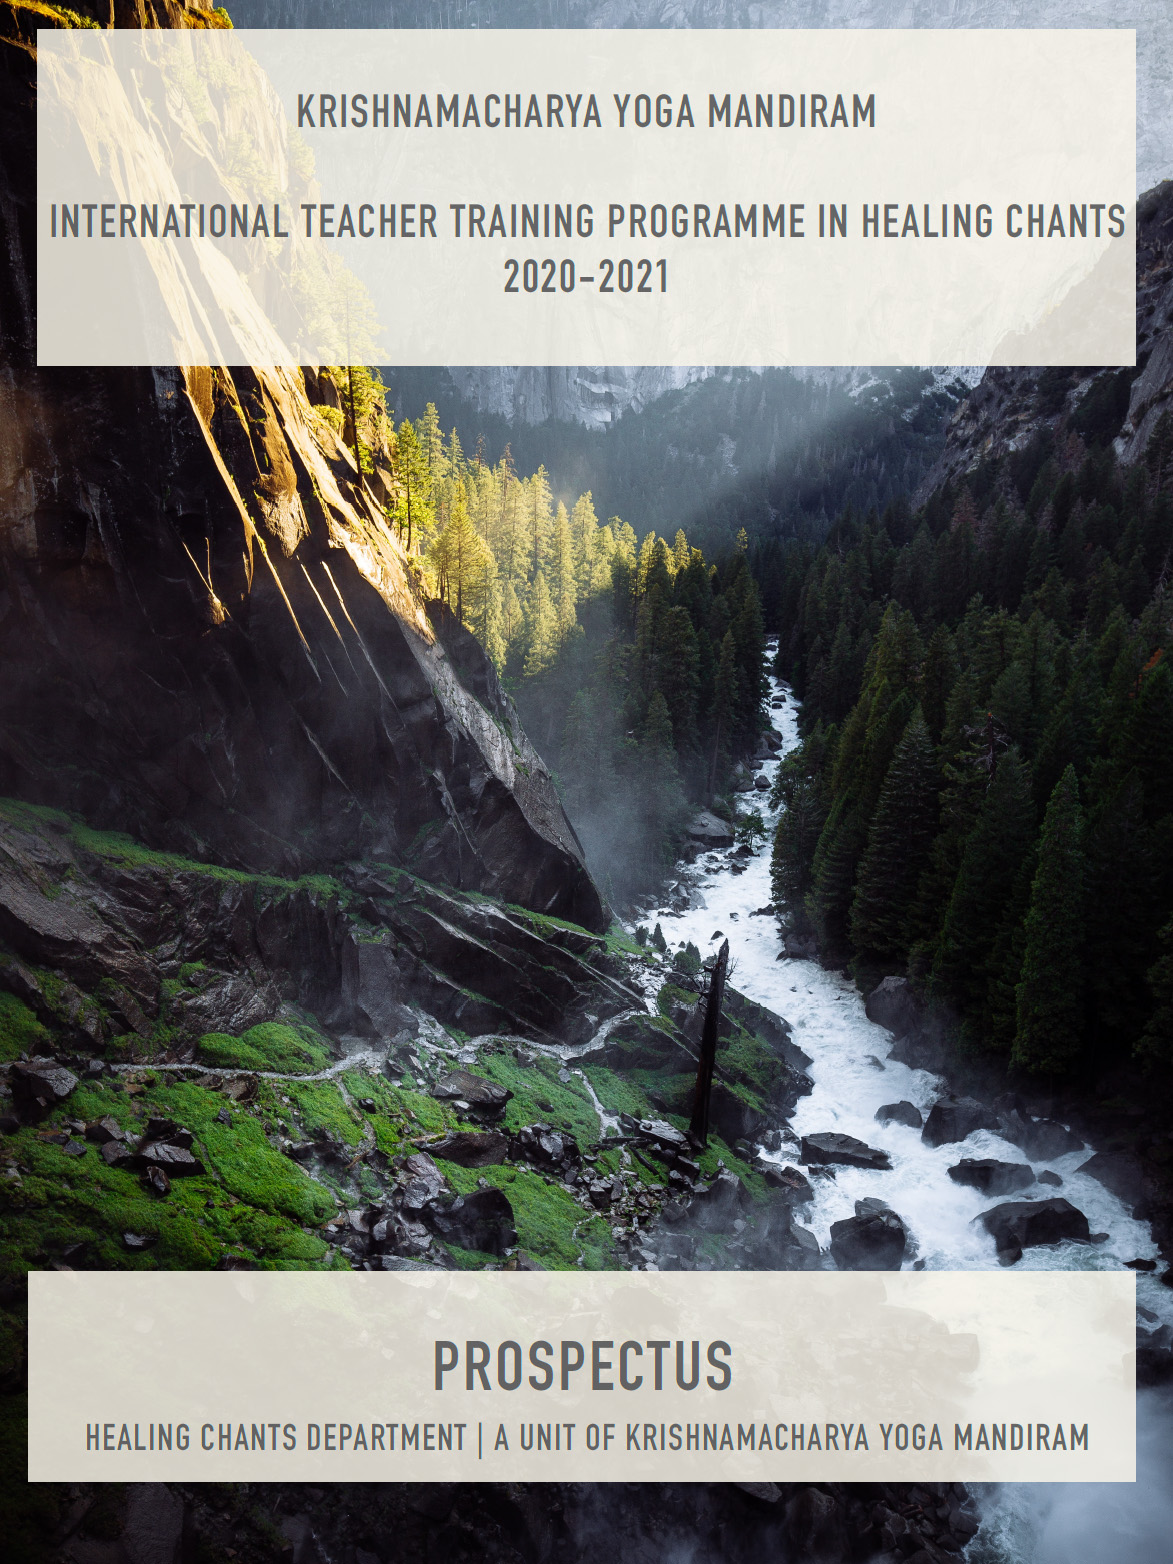 International Teacher Training Programme in Healing Chants (2020-21)